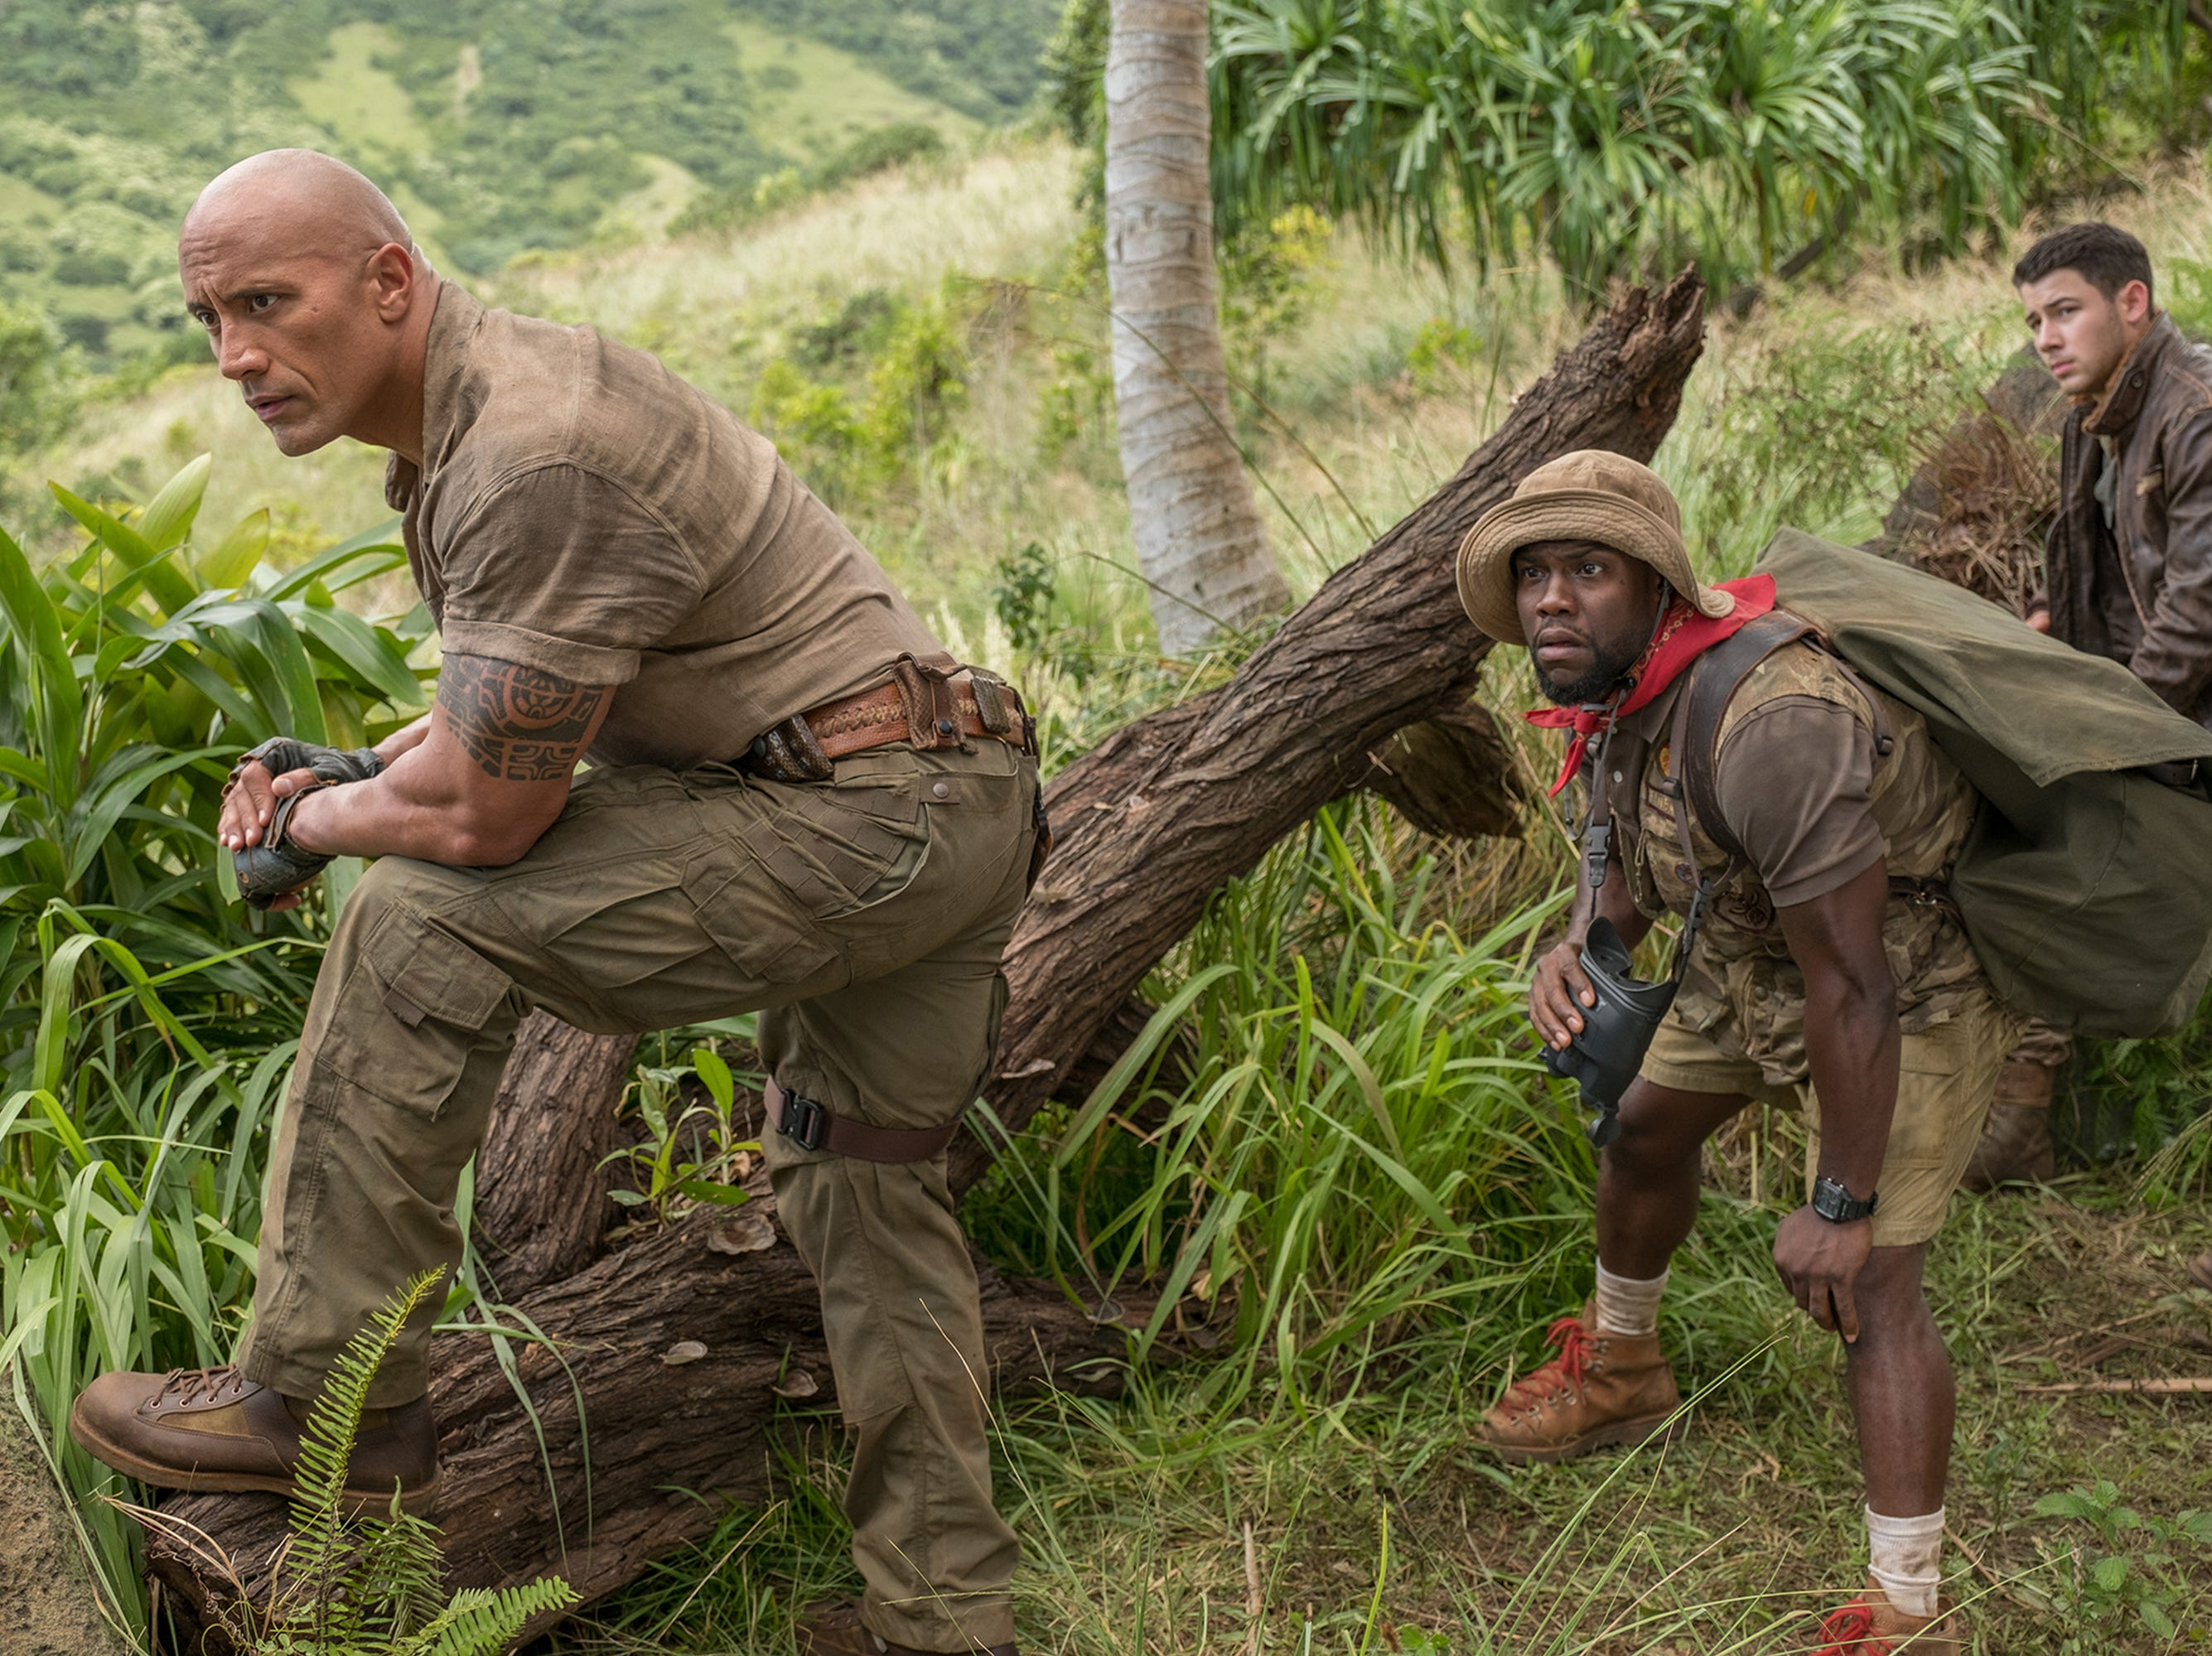 not to run until after the first look on 9/19/17! Dwayne Johnson, Kevin Hart and Nick Jonas star in JUMANJI: WELCOME TO THE JUNGLE ORG XMIT: Dwayne Johnson (Finalized);Kevin [Via MerlinFTP Drop]